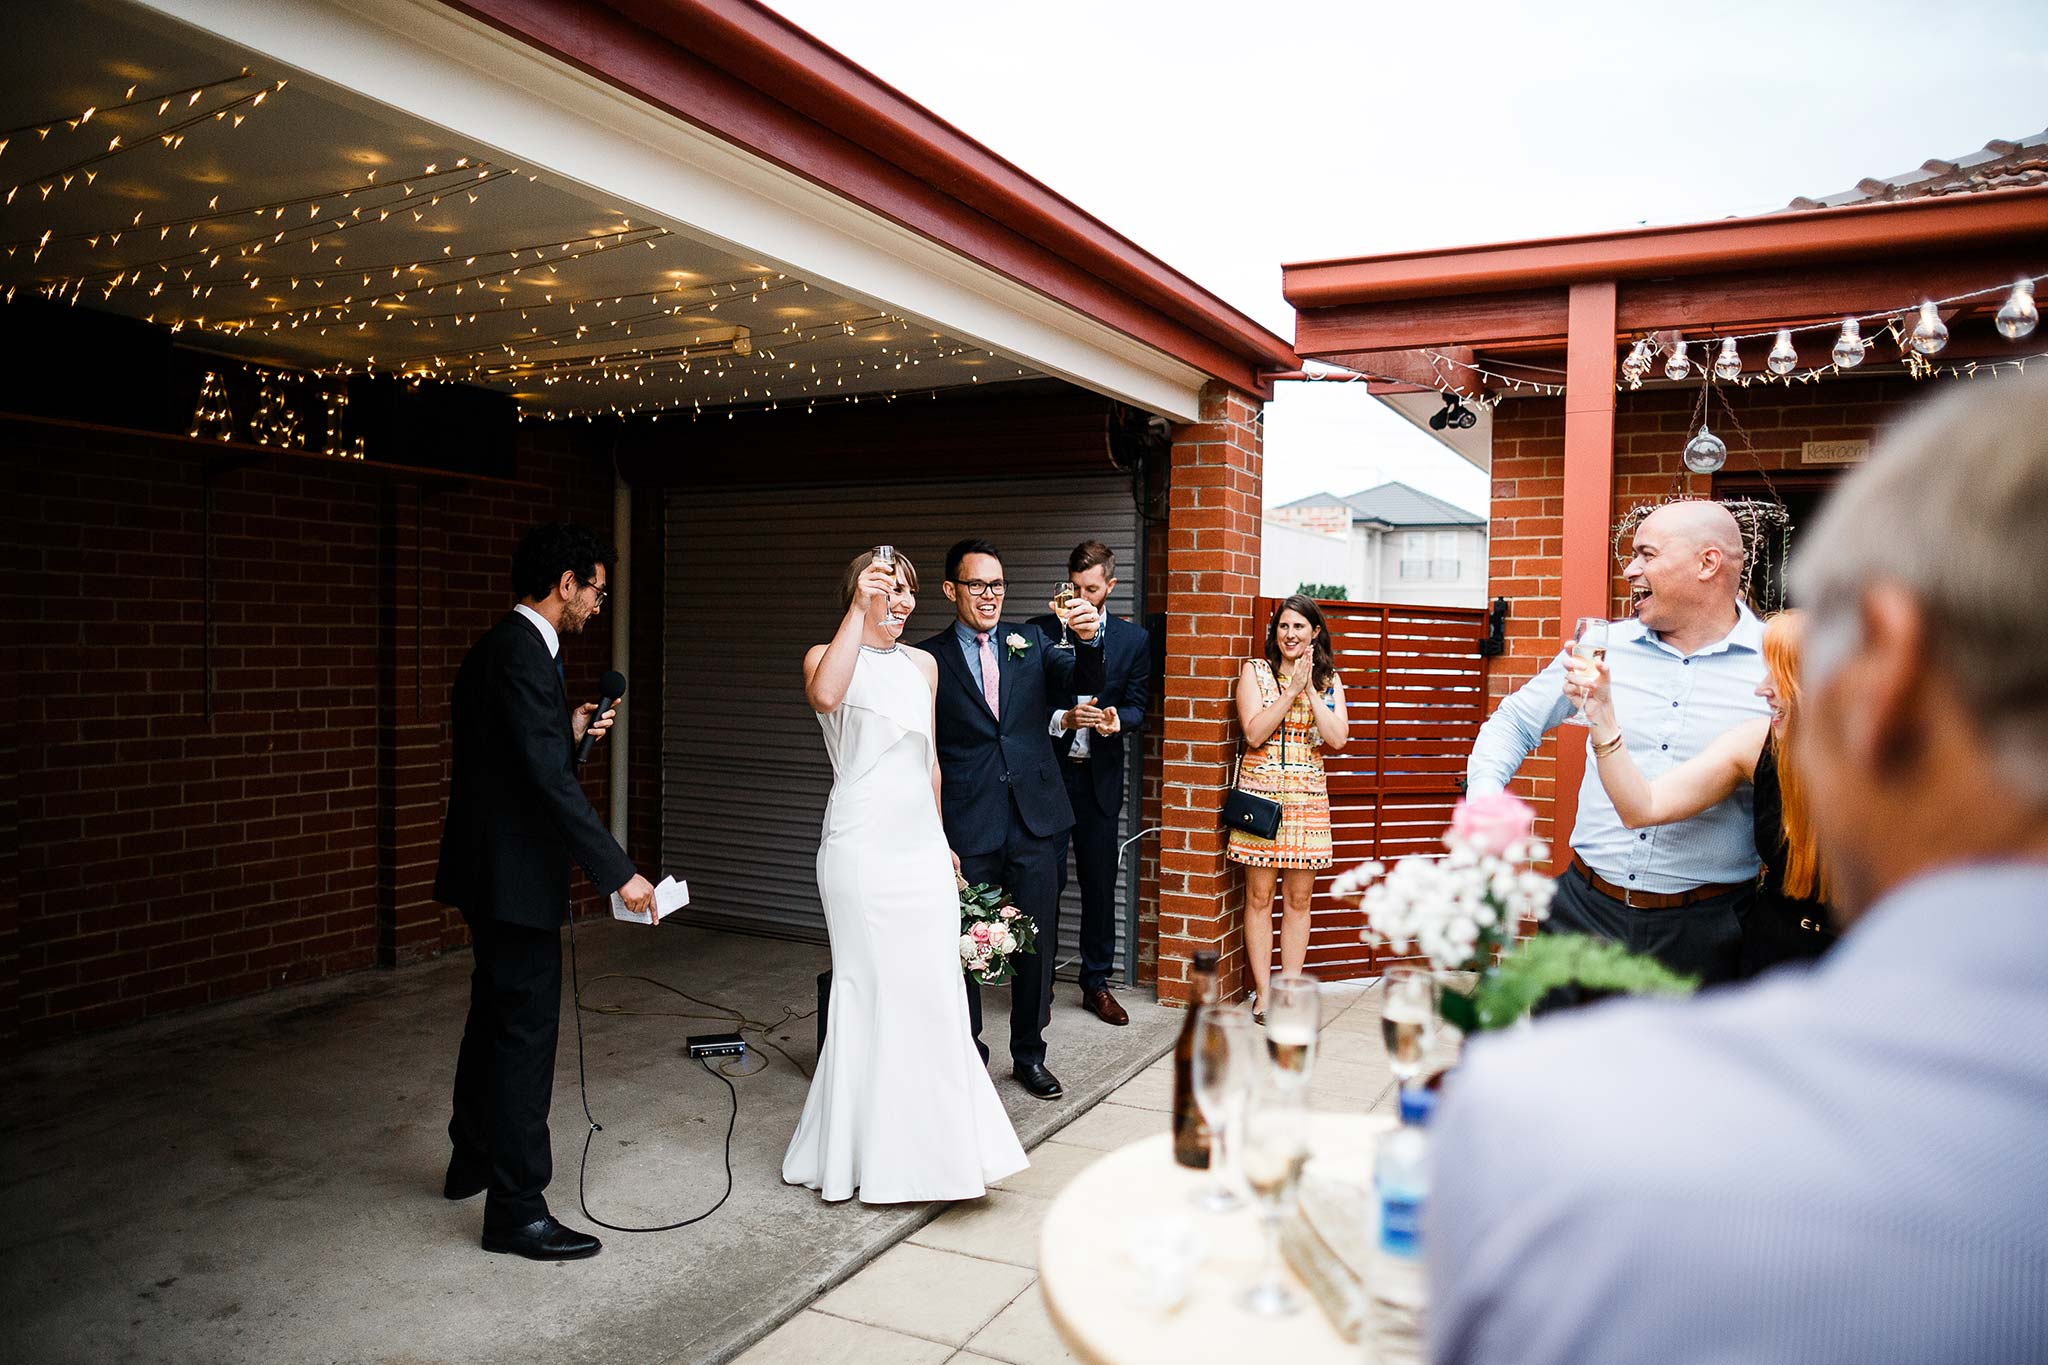 Strathmore-Melbourne-Backyard-Wedding-reception-cheers